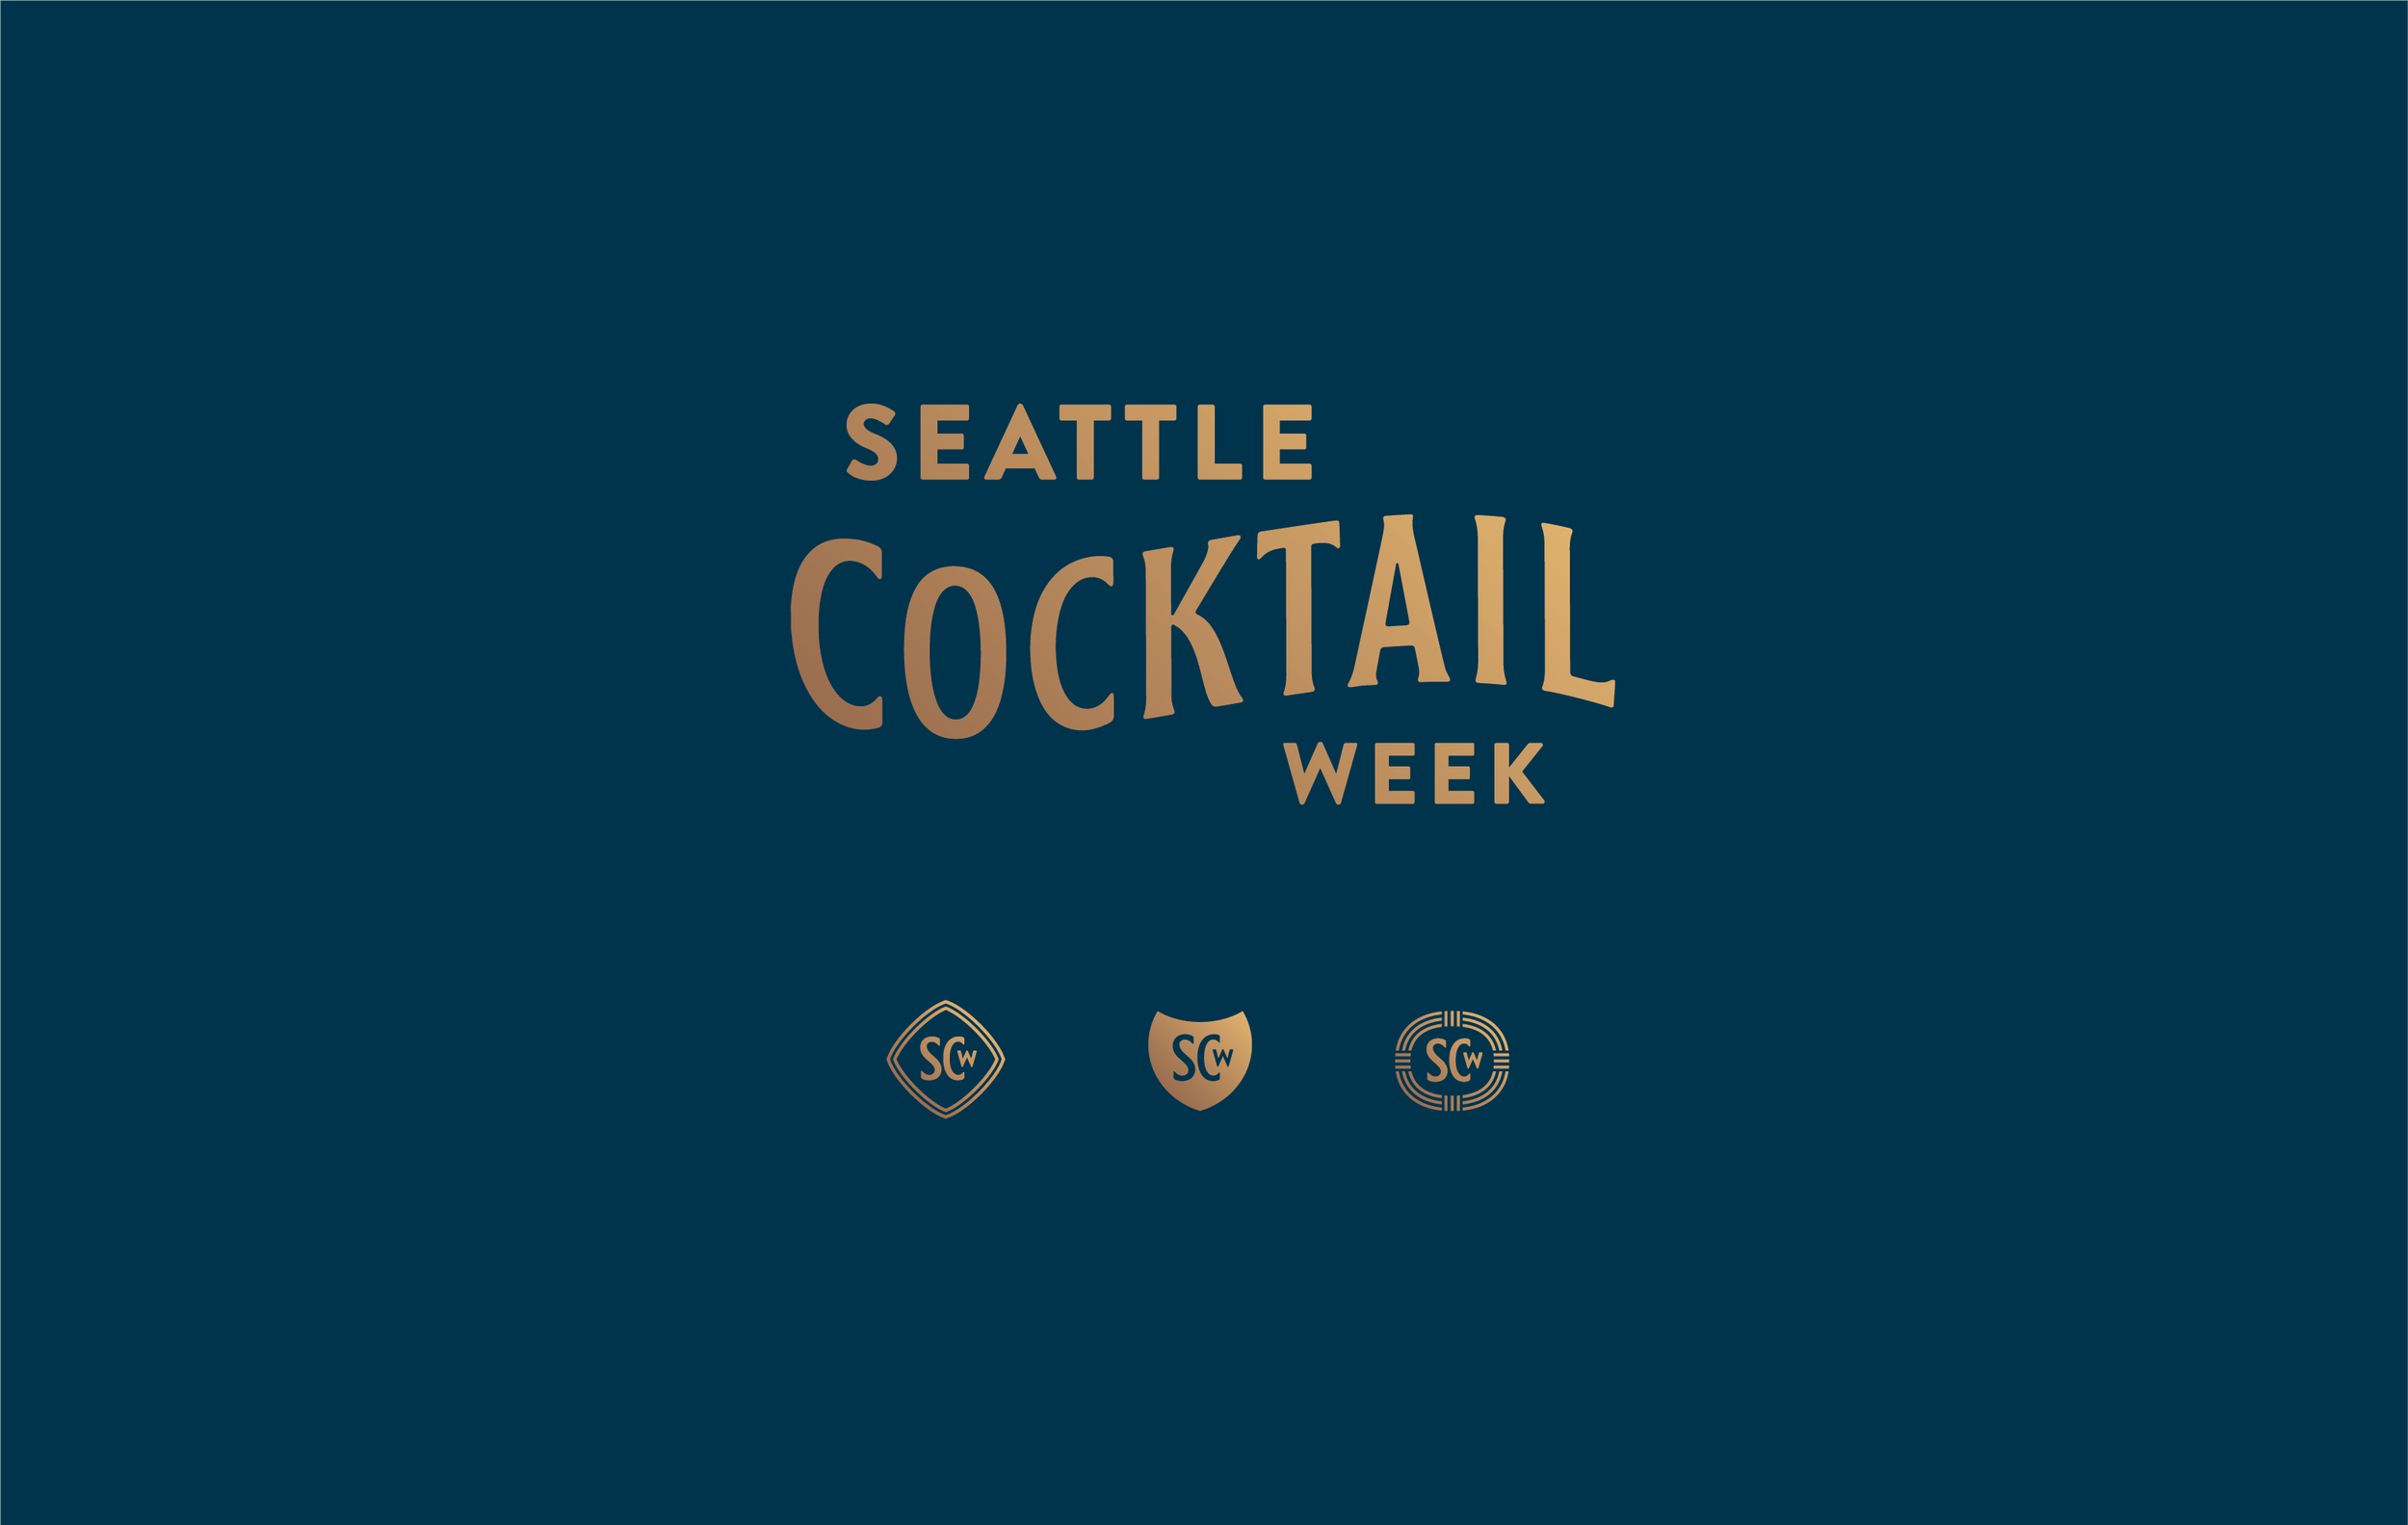 Seattle Cocktail Week is a week-long celebration of the Emerald City's cocktail scene. This wordmark strives to evoke the timeless elegance of the craft cocktail experience.